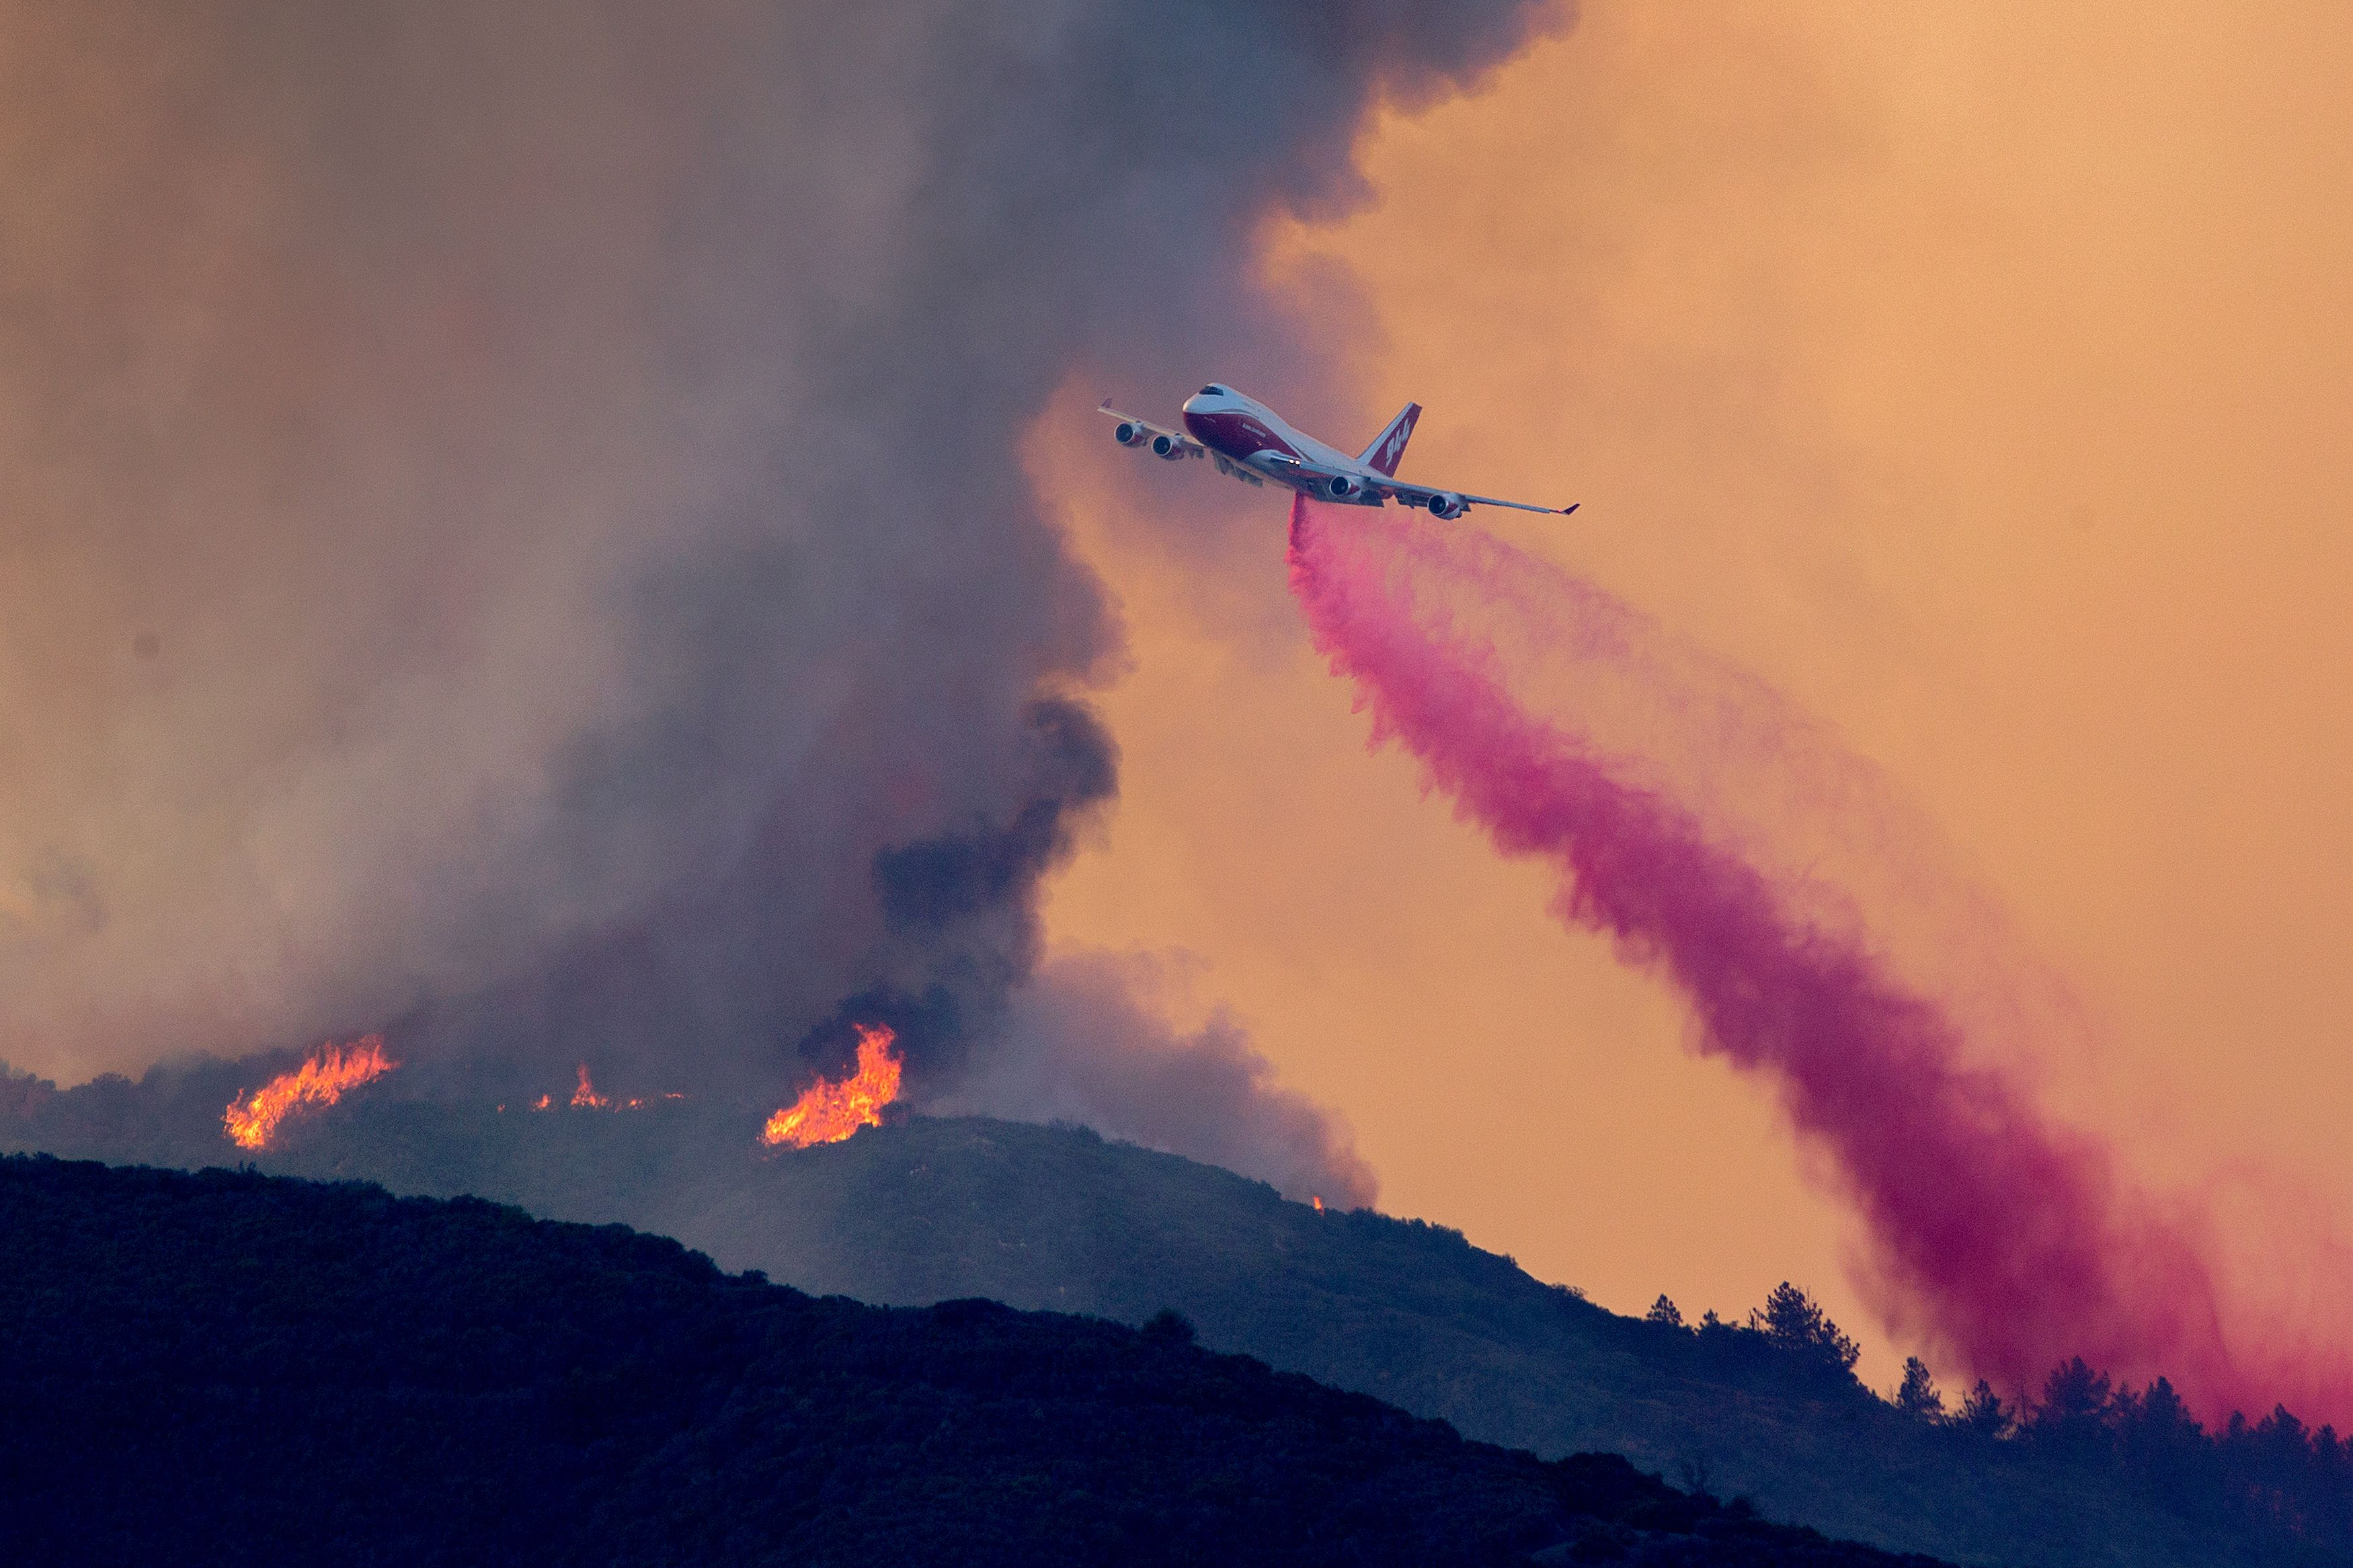 <div class='meta'><div class='origin-logo' data-origin='none'></div><span class='caption-text' data-credit='DAVID MCNEW/AFP/Getty Images'>A 747 Global Supertanker jet drops fire retardant at the Holy Fire near Lake Elsinore, in Orange County, California, on August 7, 2018.</span></div>